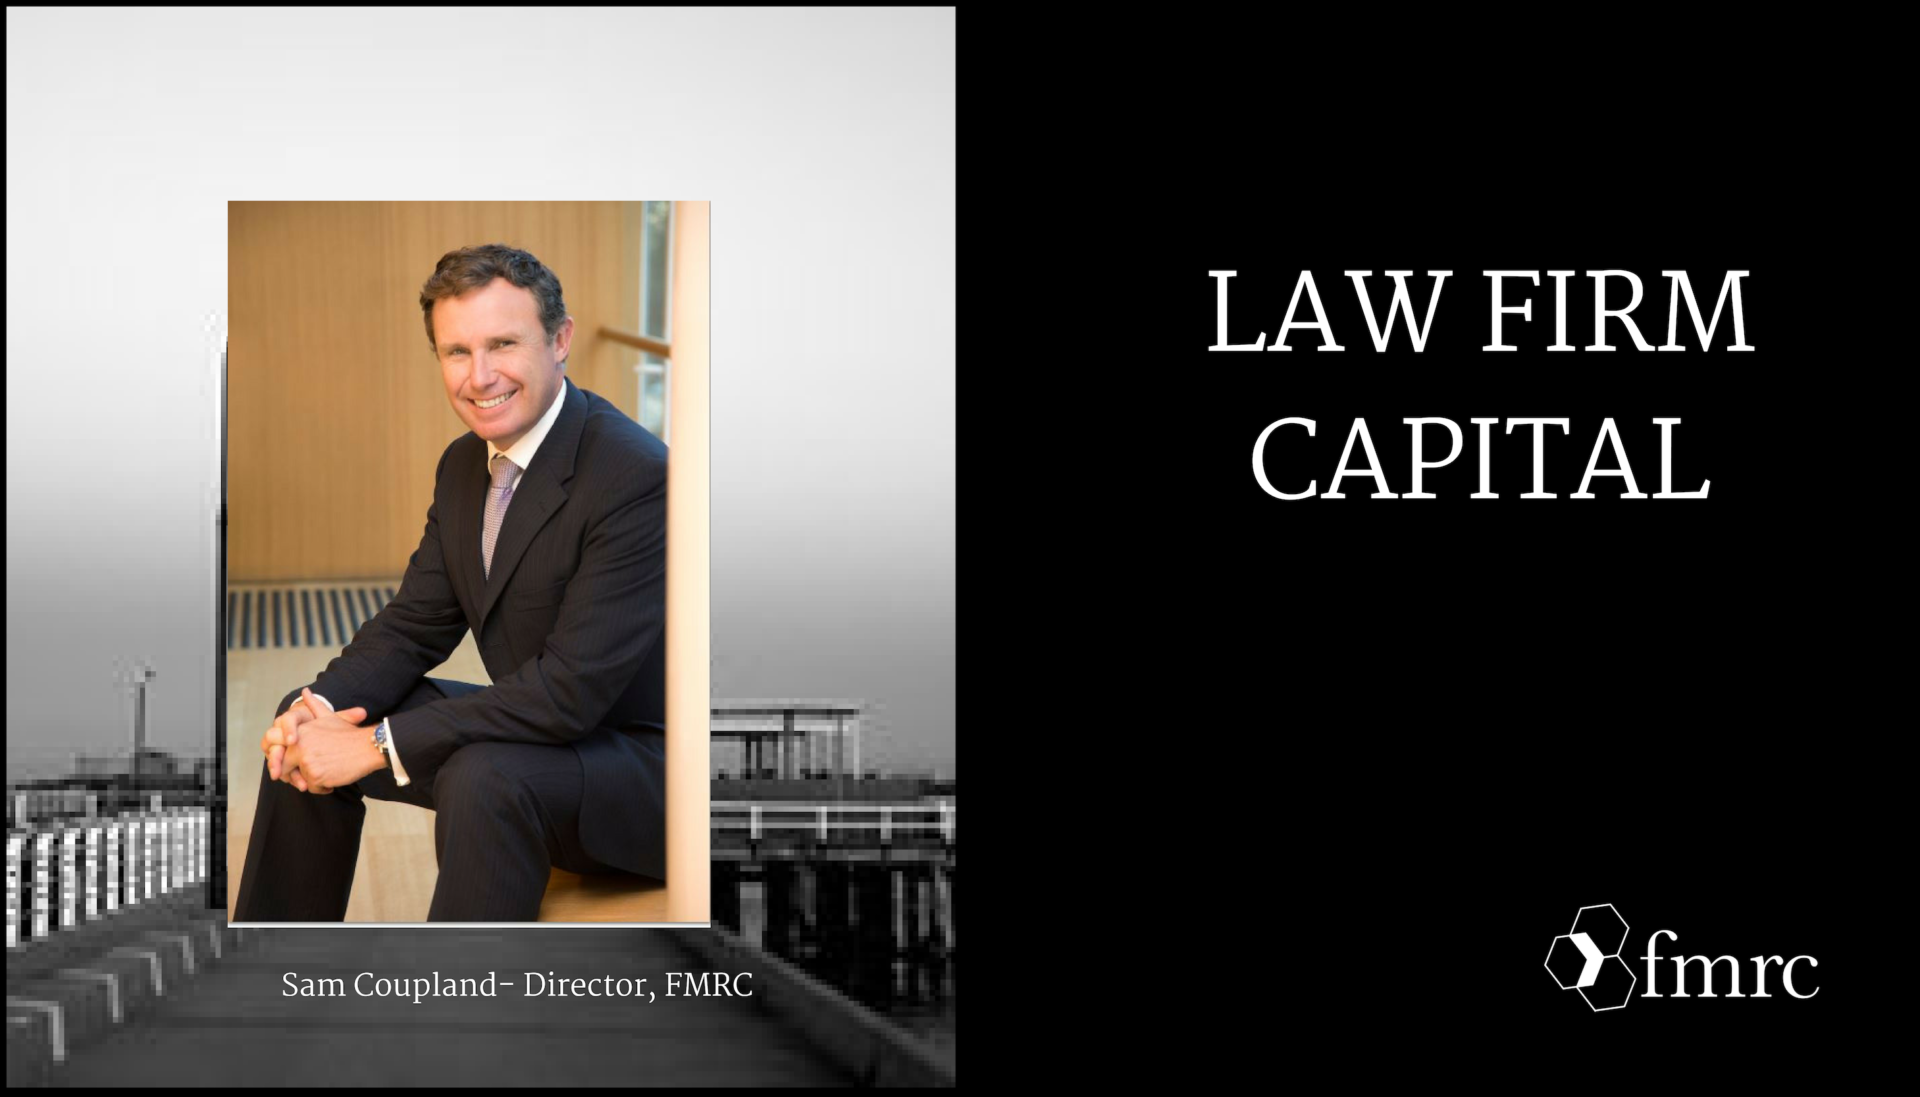 Law Firm Capital